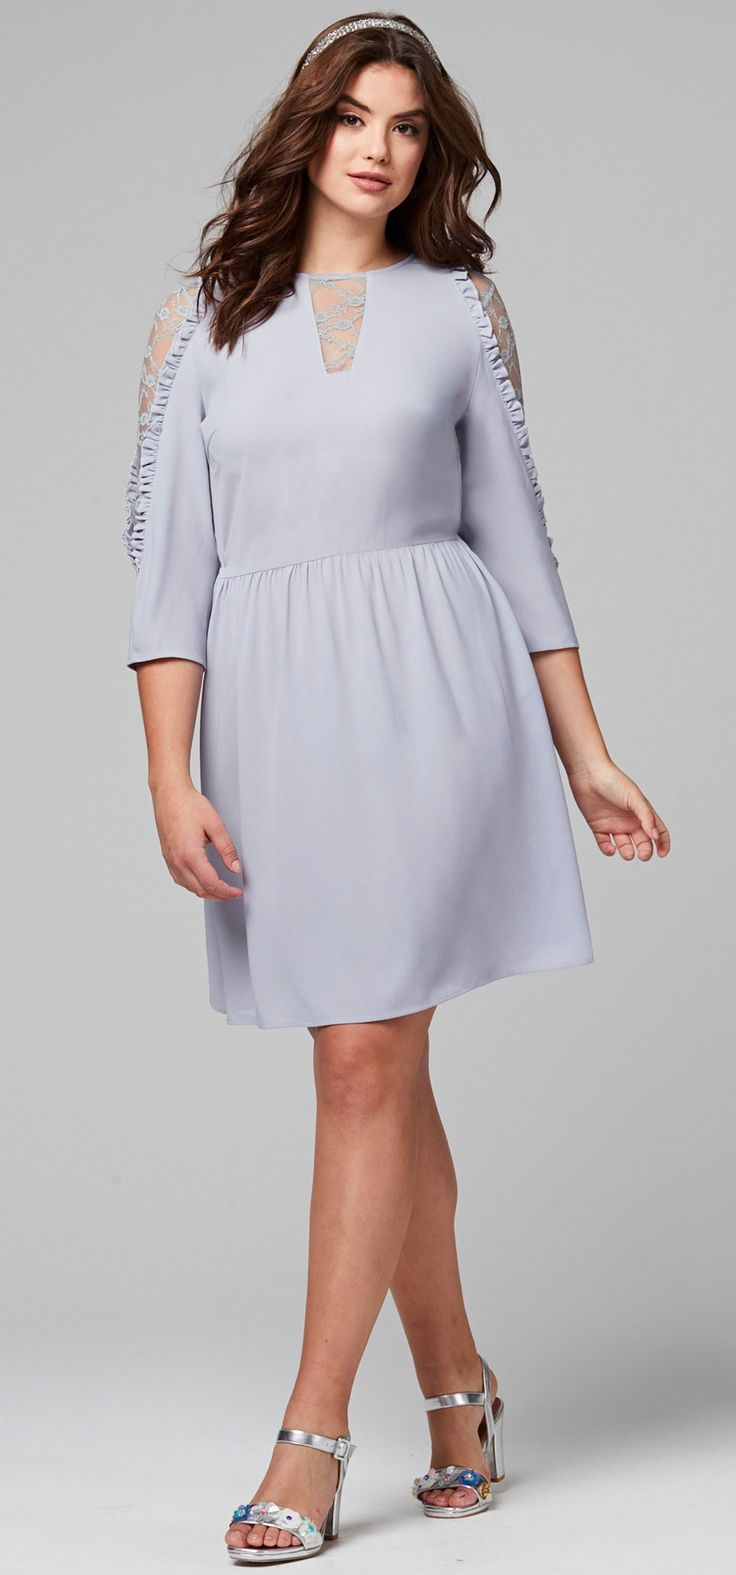 17 best images about plus size fashion on pinterest plus for Cocktail dress with sleeves for wedding